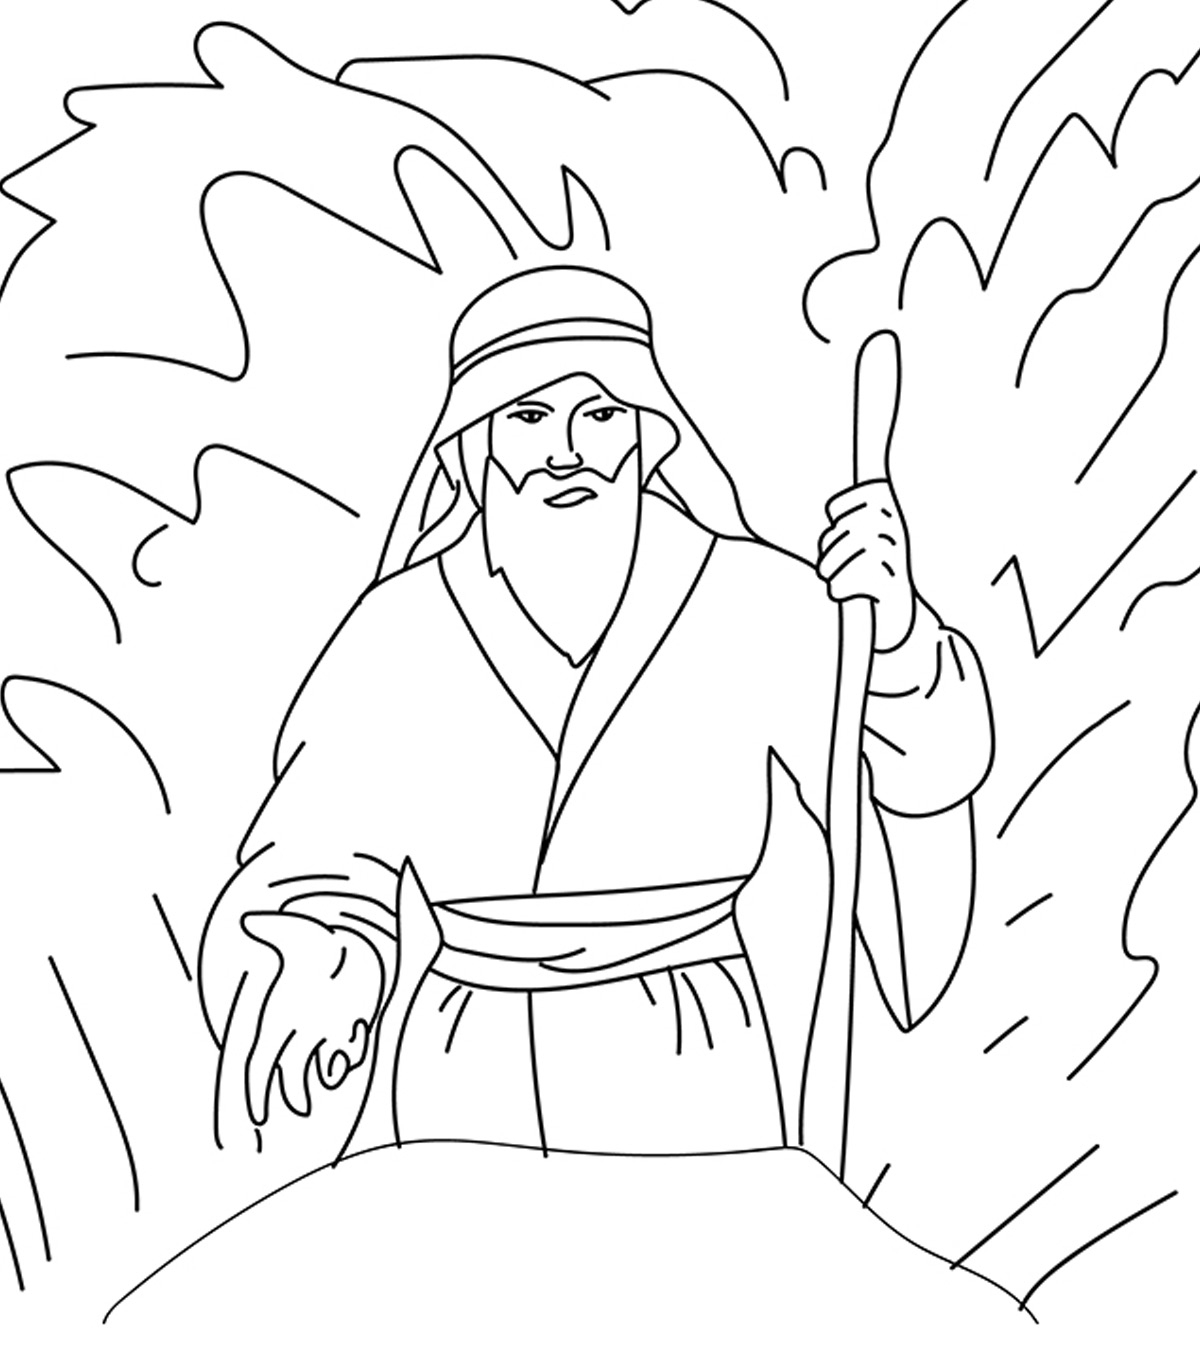 The Golden Calf Coloring Page Moses Coloring Pages Free Printables Momjunction